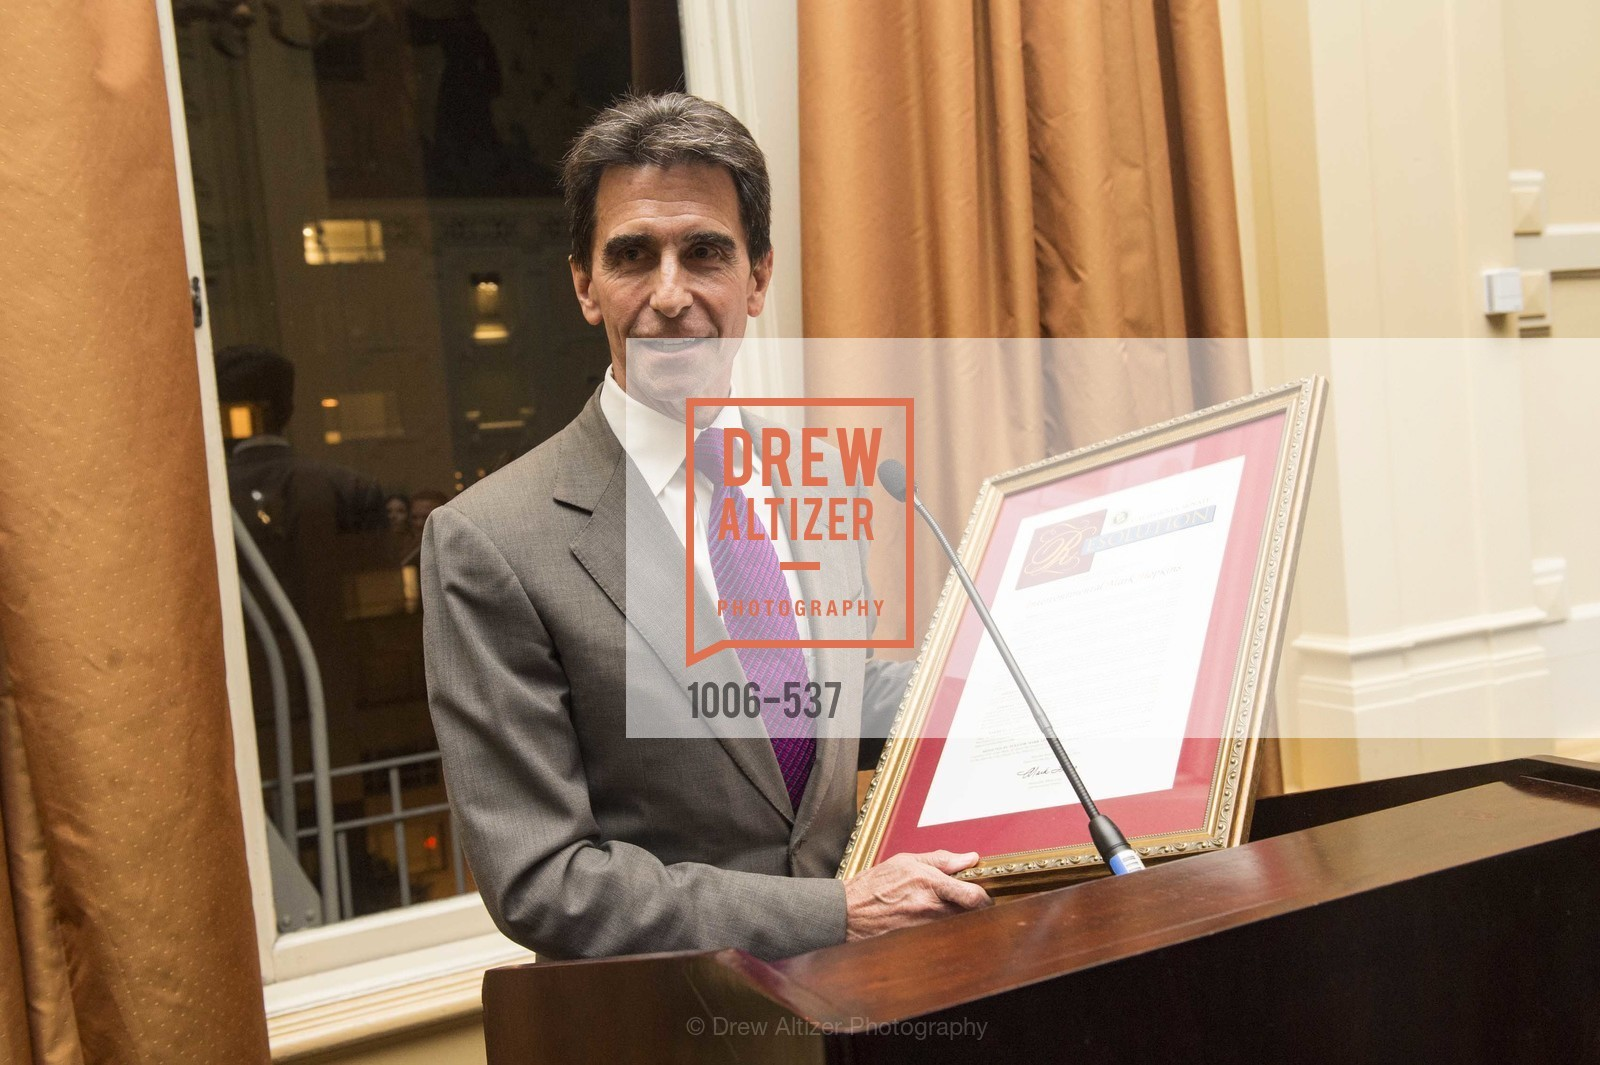 Mark Leno, TOP OF THE MARK'S 75TH Anniversary Party, US, November 7th, 2014,Drew Altizer, Drew Altizer Photography, full-service agency, private events, San Francisco photographer, photographer california